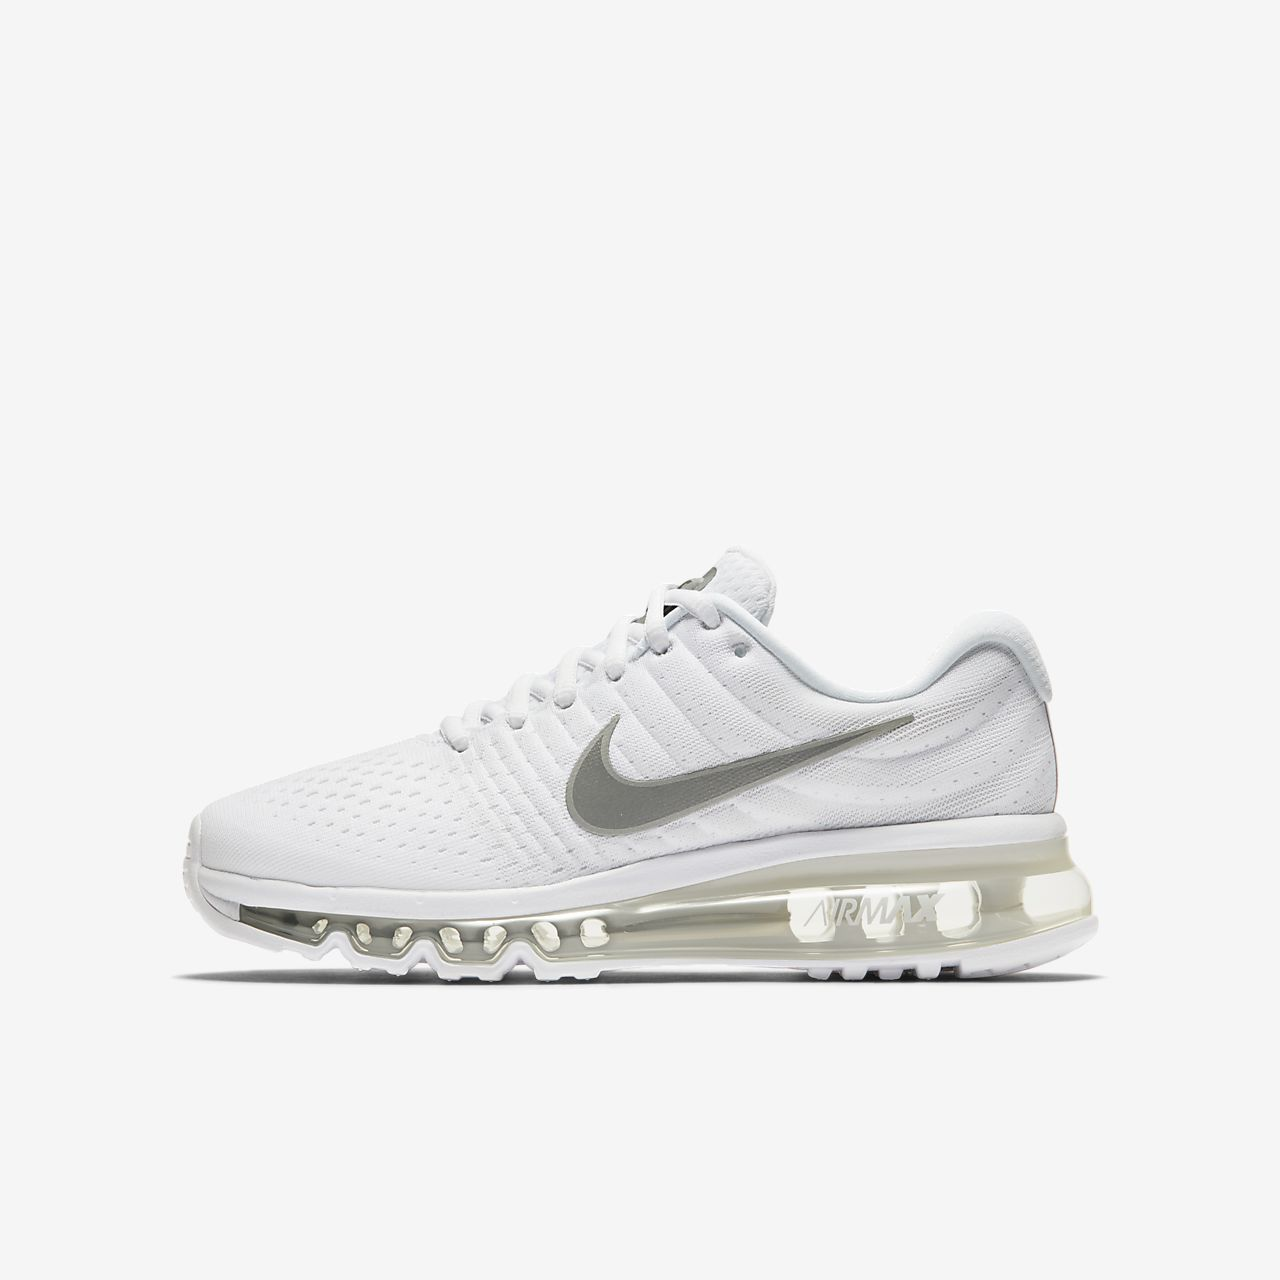 41ef02a23c9 Nike Air Max 2017 Older Kids  Shoe. Nike.com NL